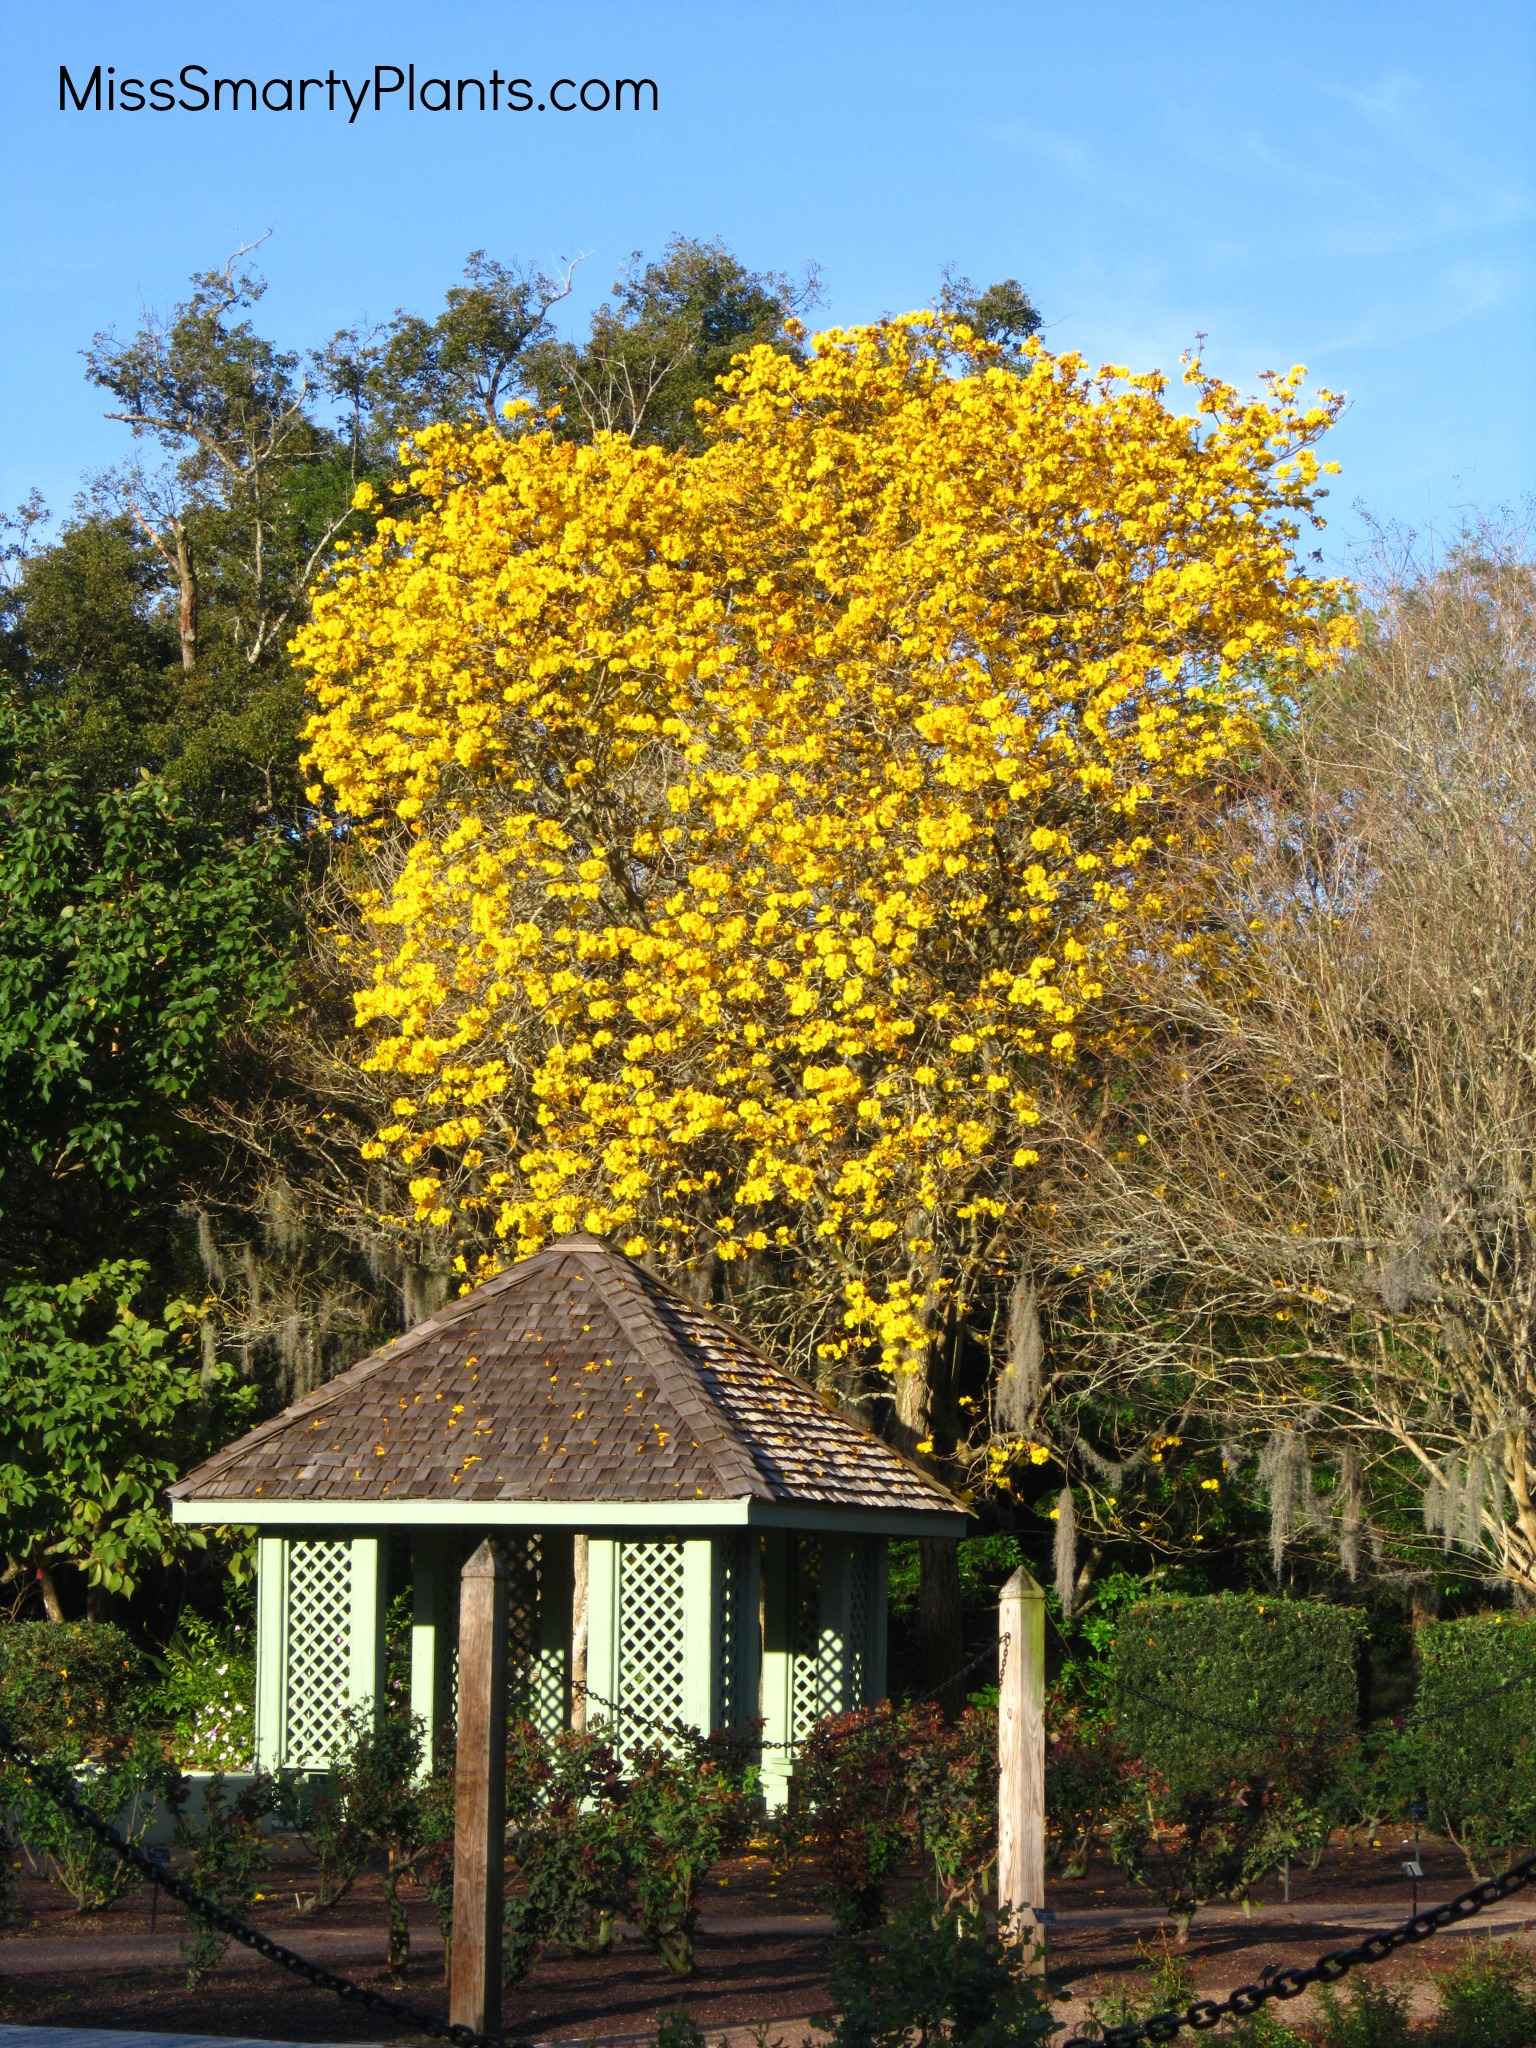 Yellow Flowers Tabebuia Trees Miss Smarty Plants